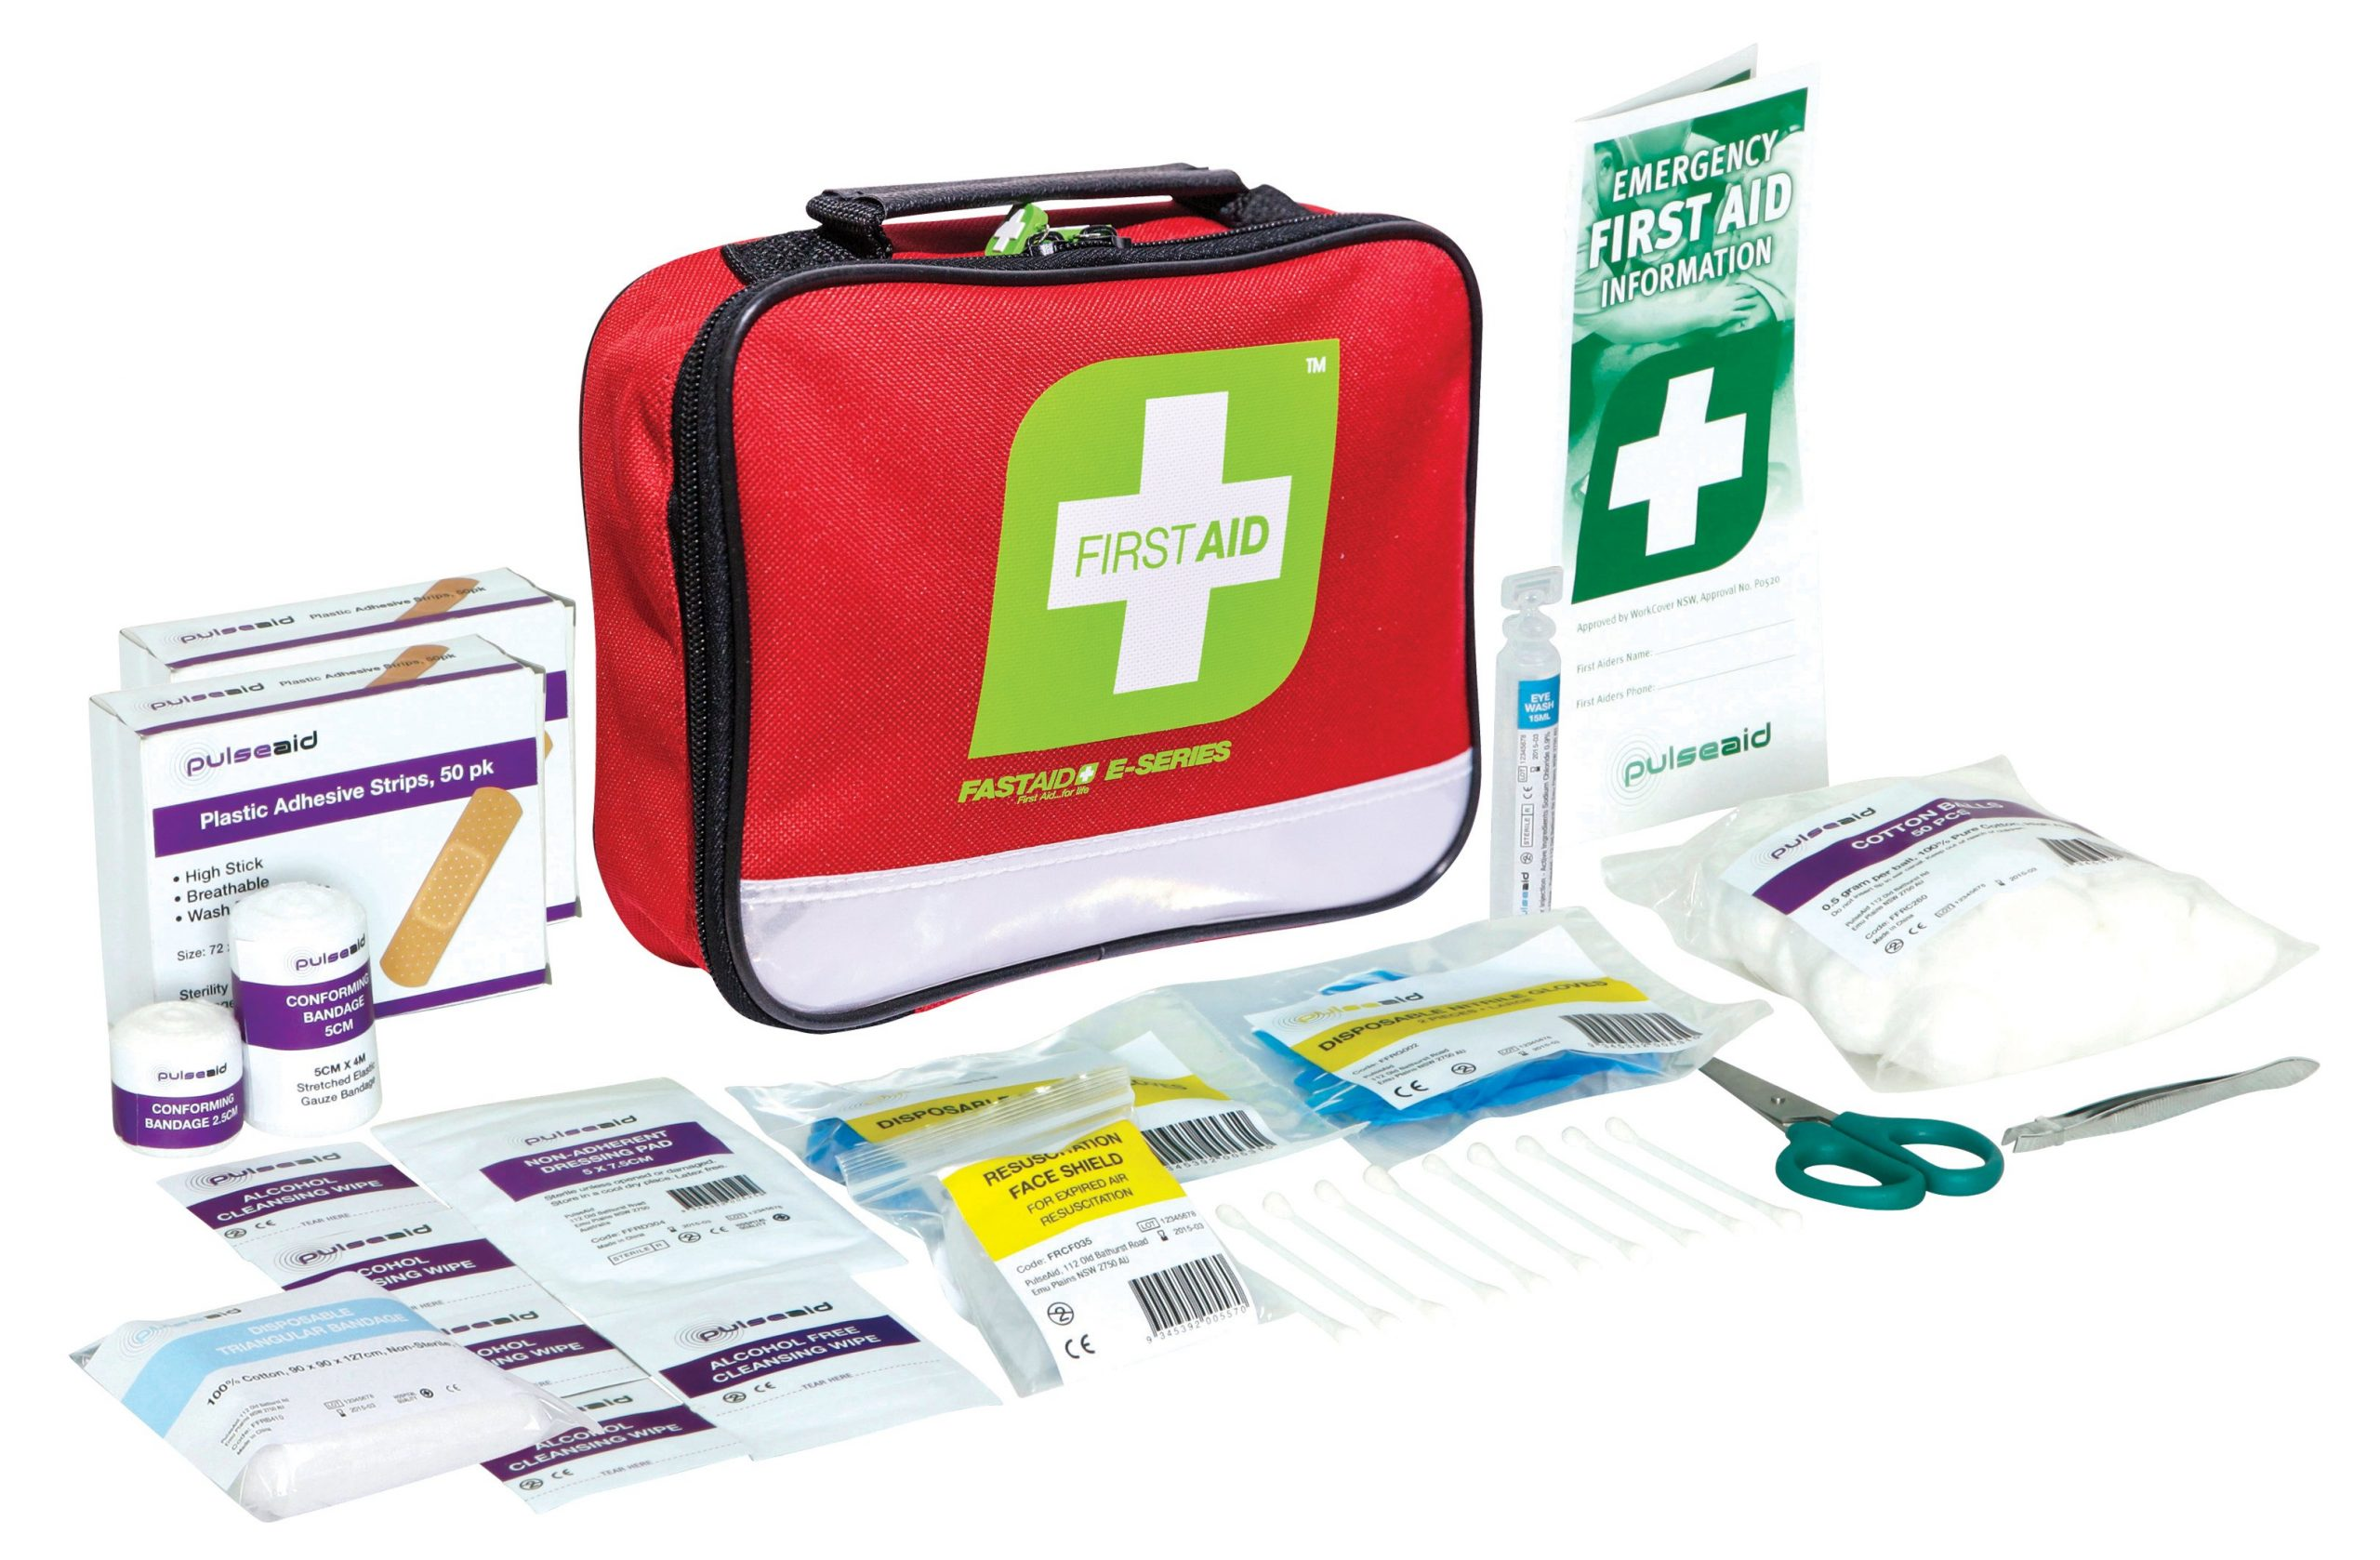 E-Series Travel First Aid Kit, Red Soft Pack